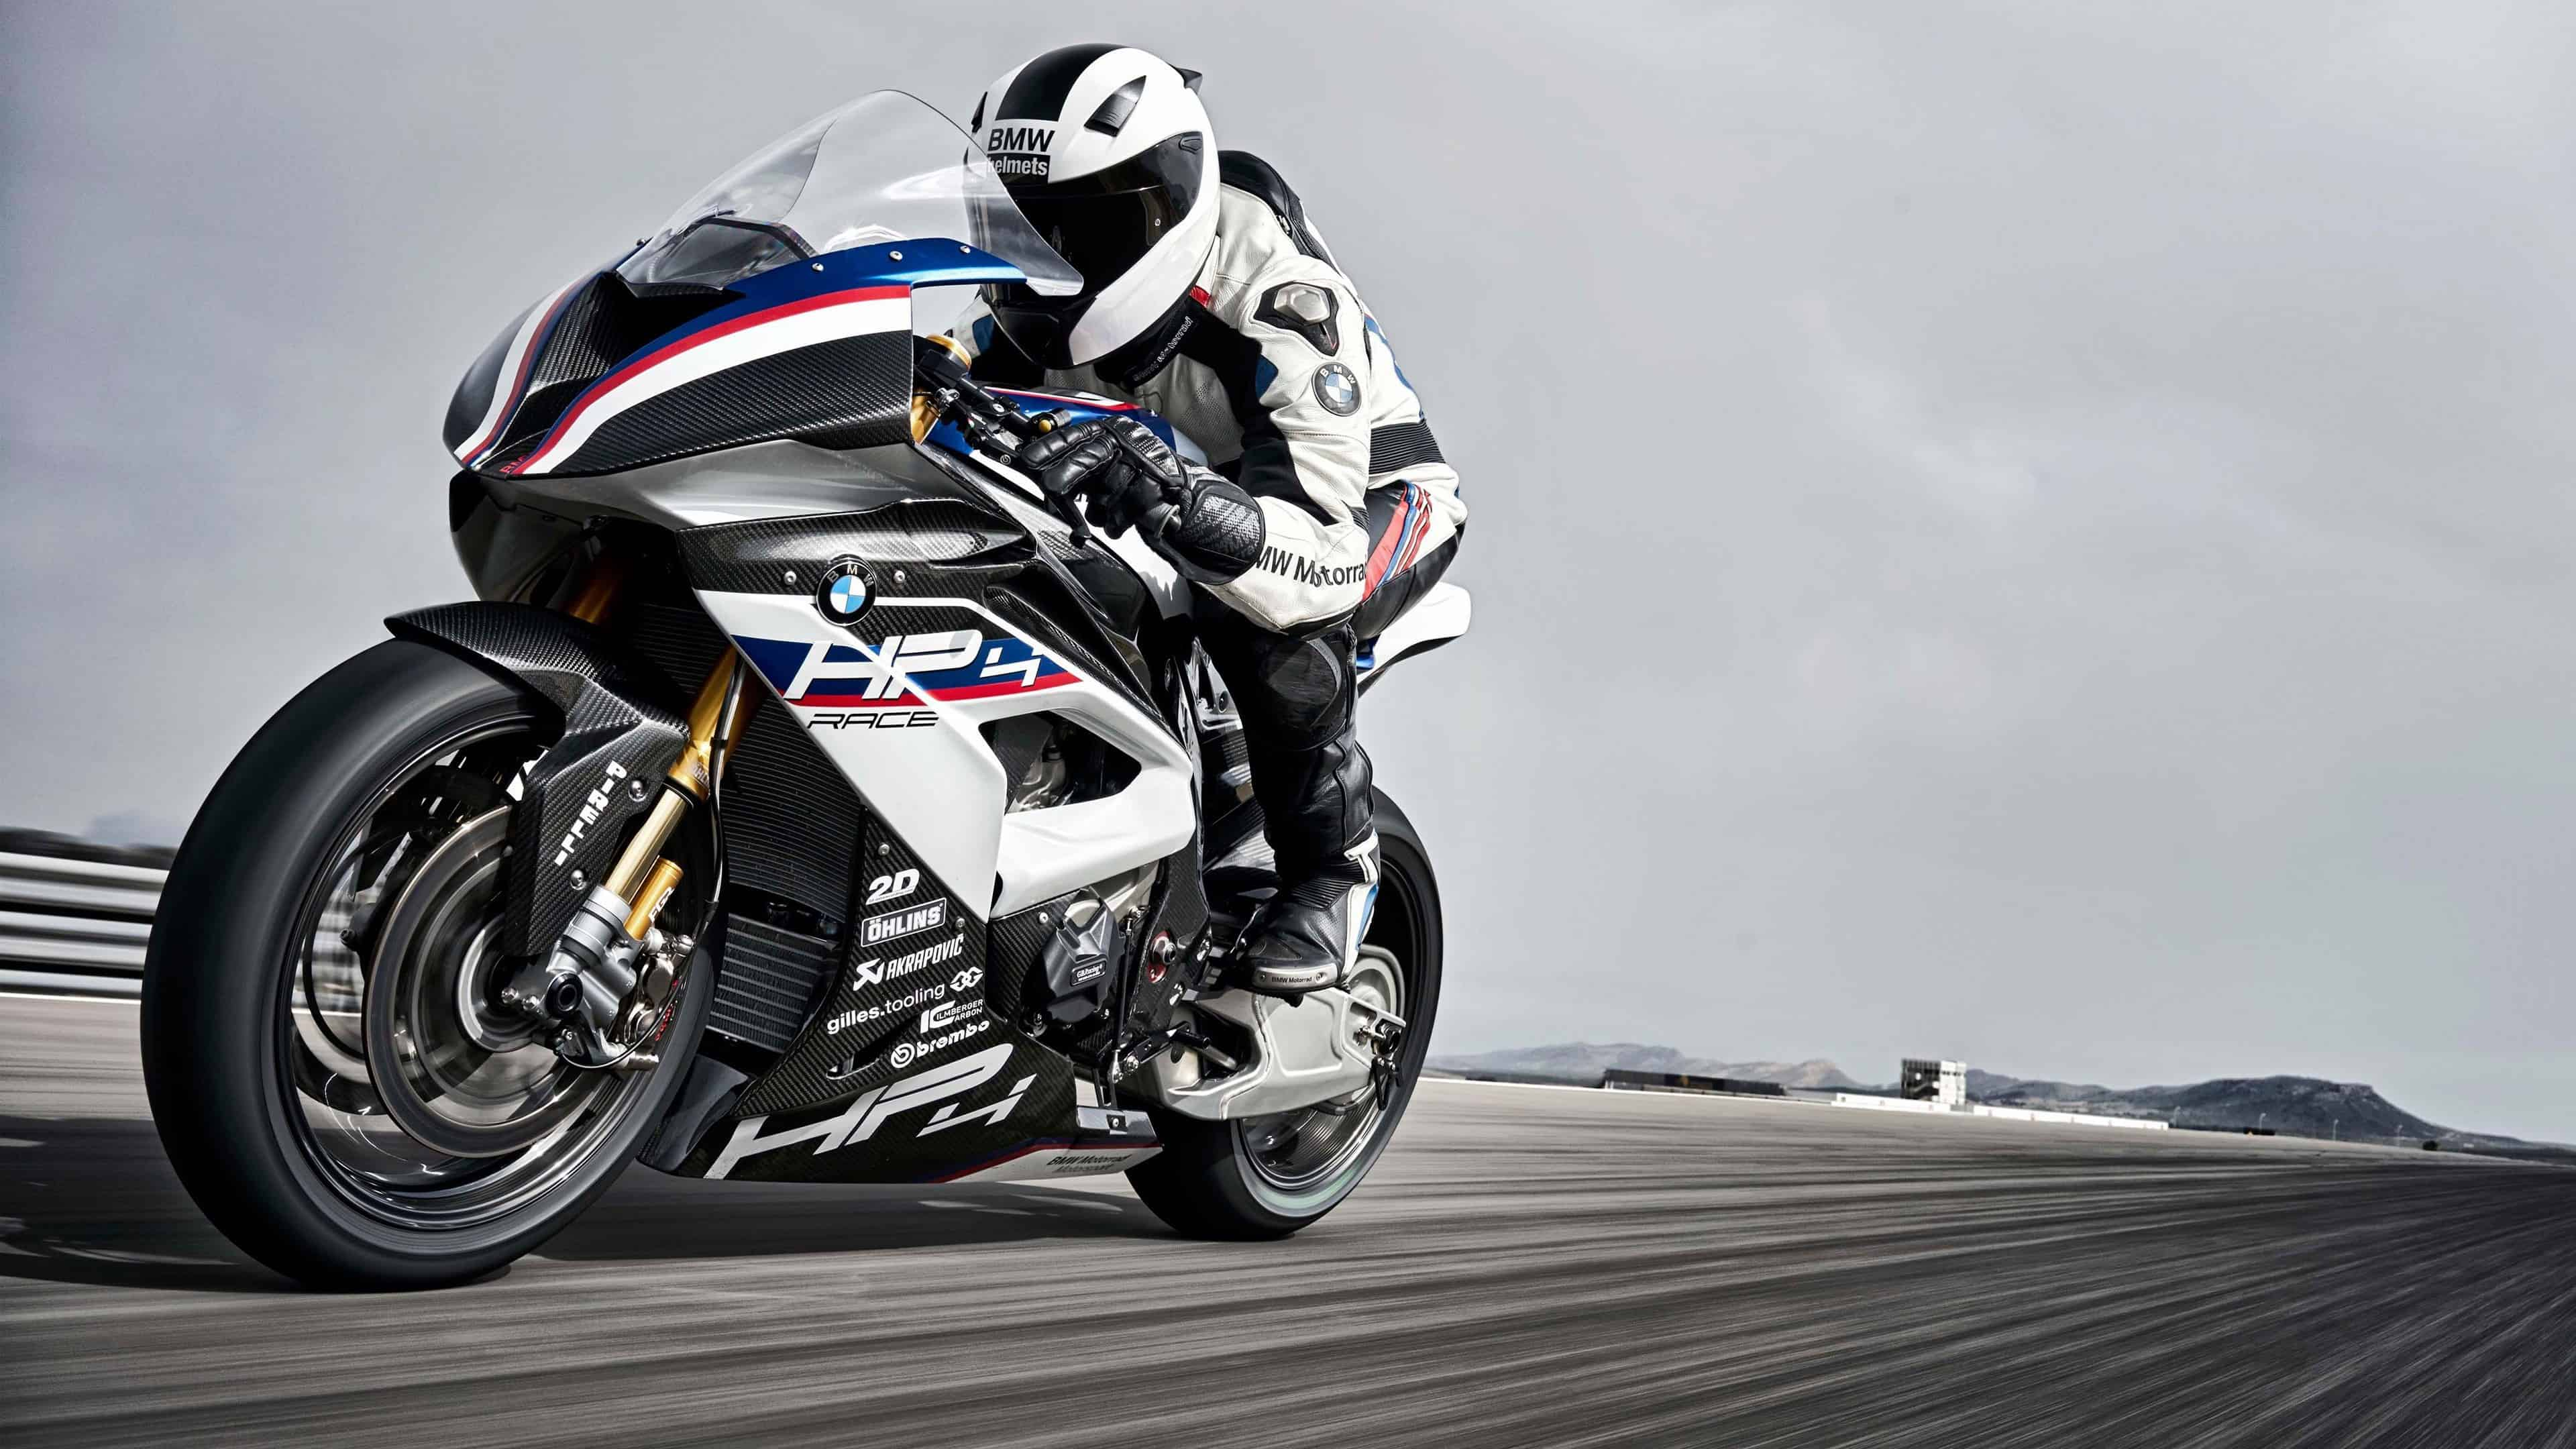 BMW HP4 Bike UHD 4K Wallpaper Pixelz 3840x2160